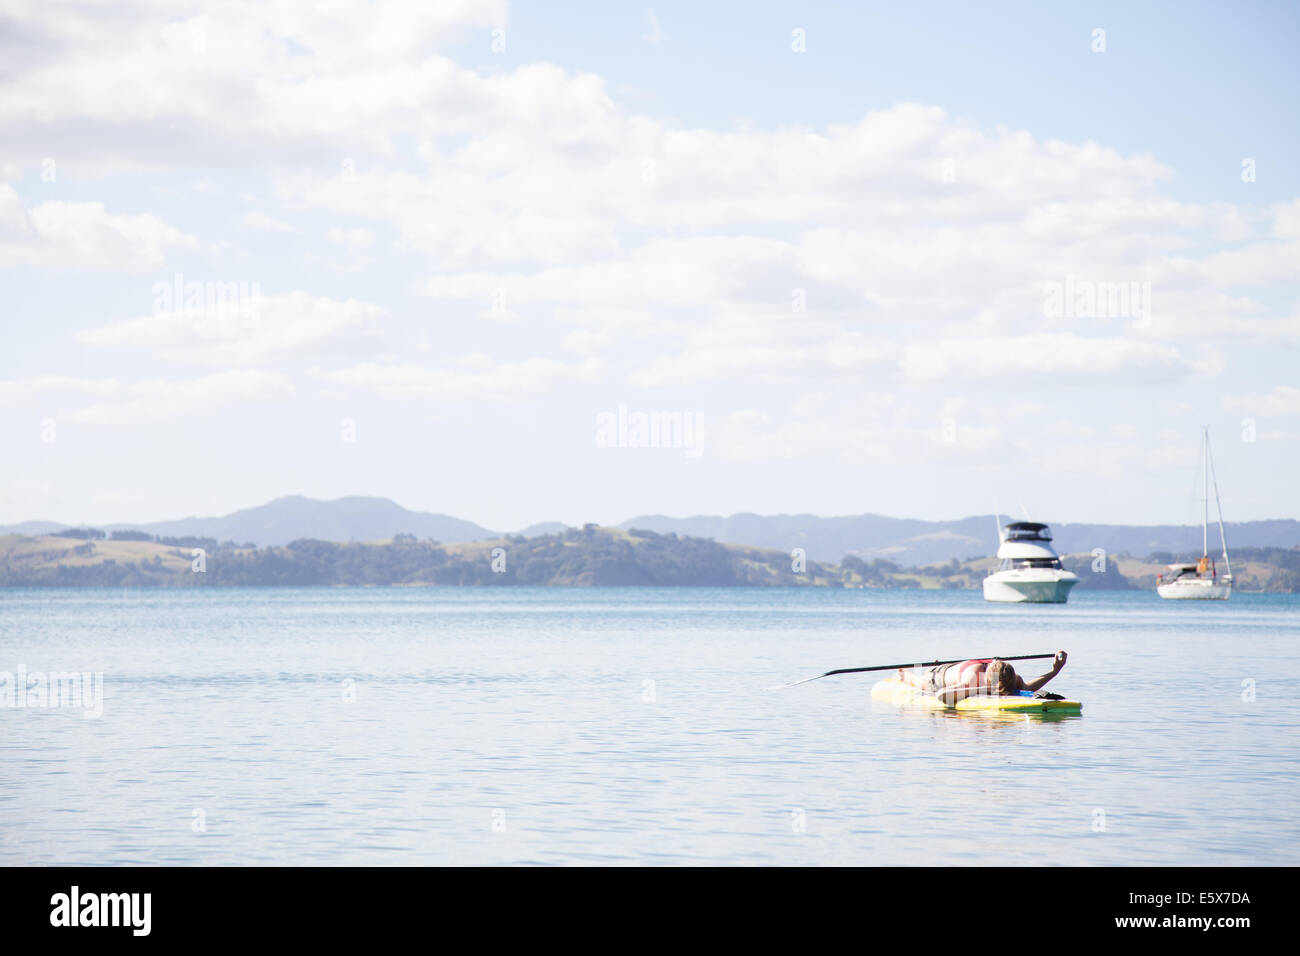 Mid adult woman lying on her back paddleboarding at sea - Stock Image